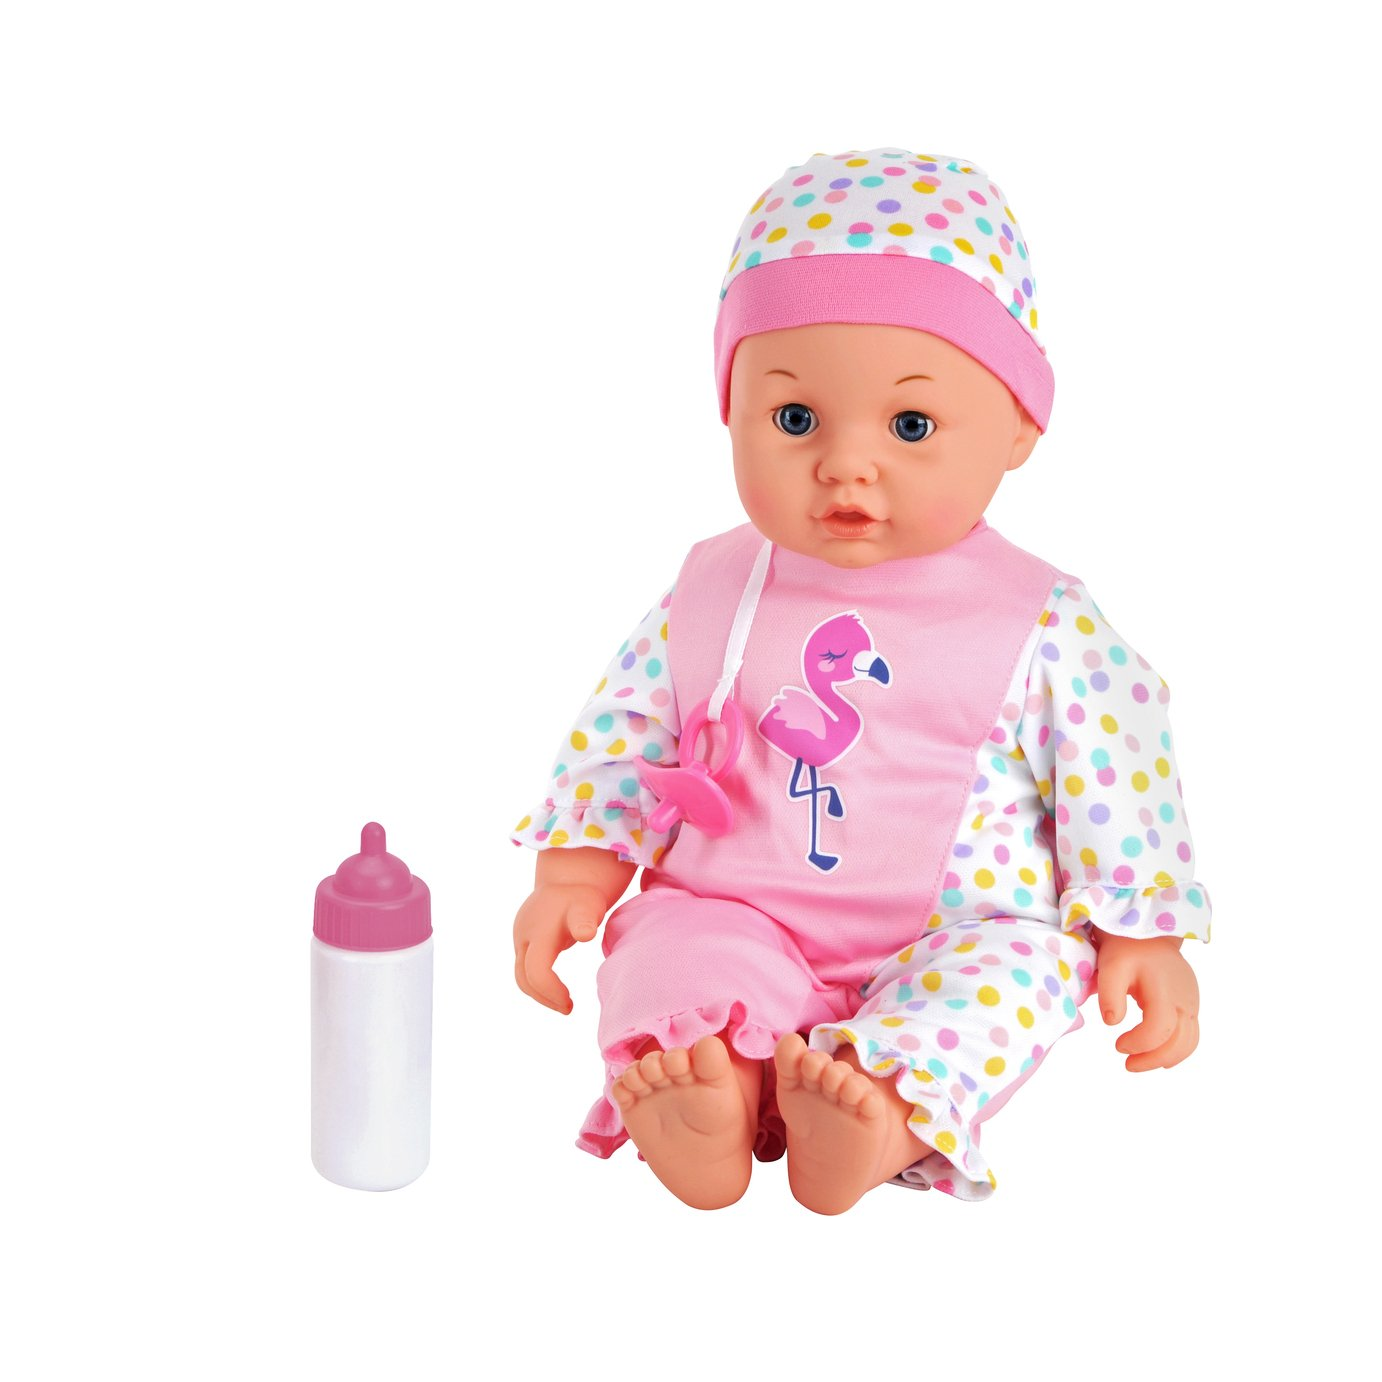 chad-valley-babies-to-love-lily-interactive-doll